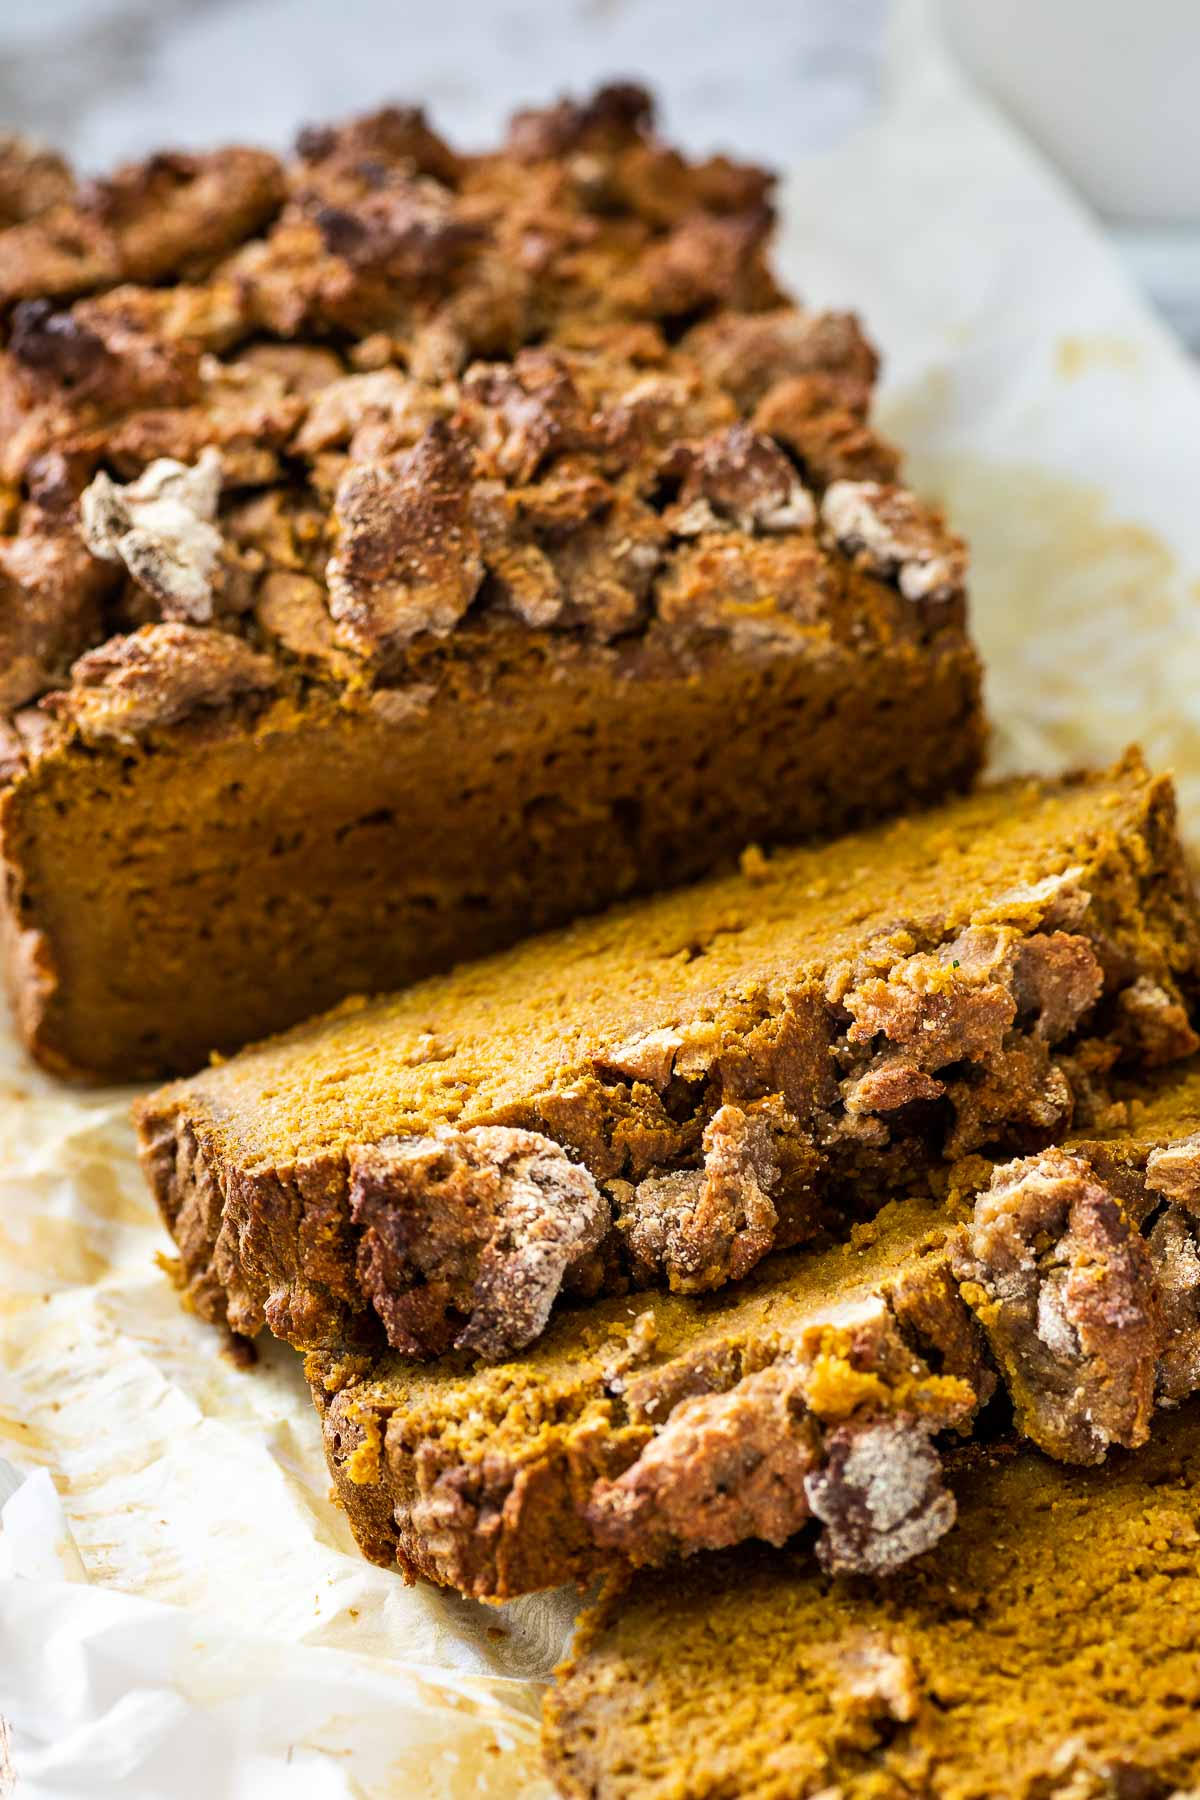 Straight view of the sliced pumpkin bread loaf